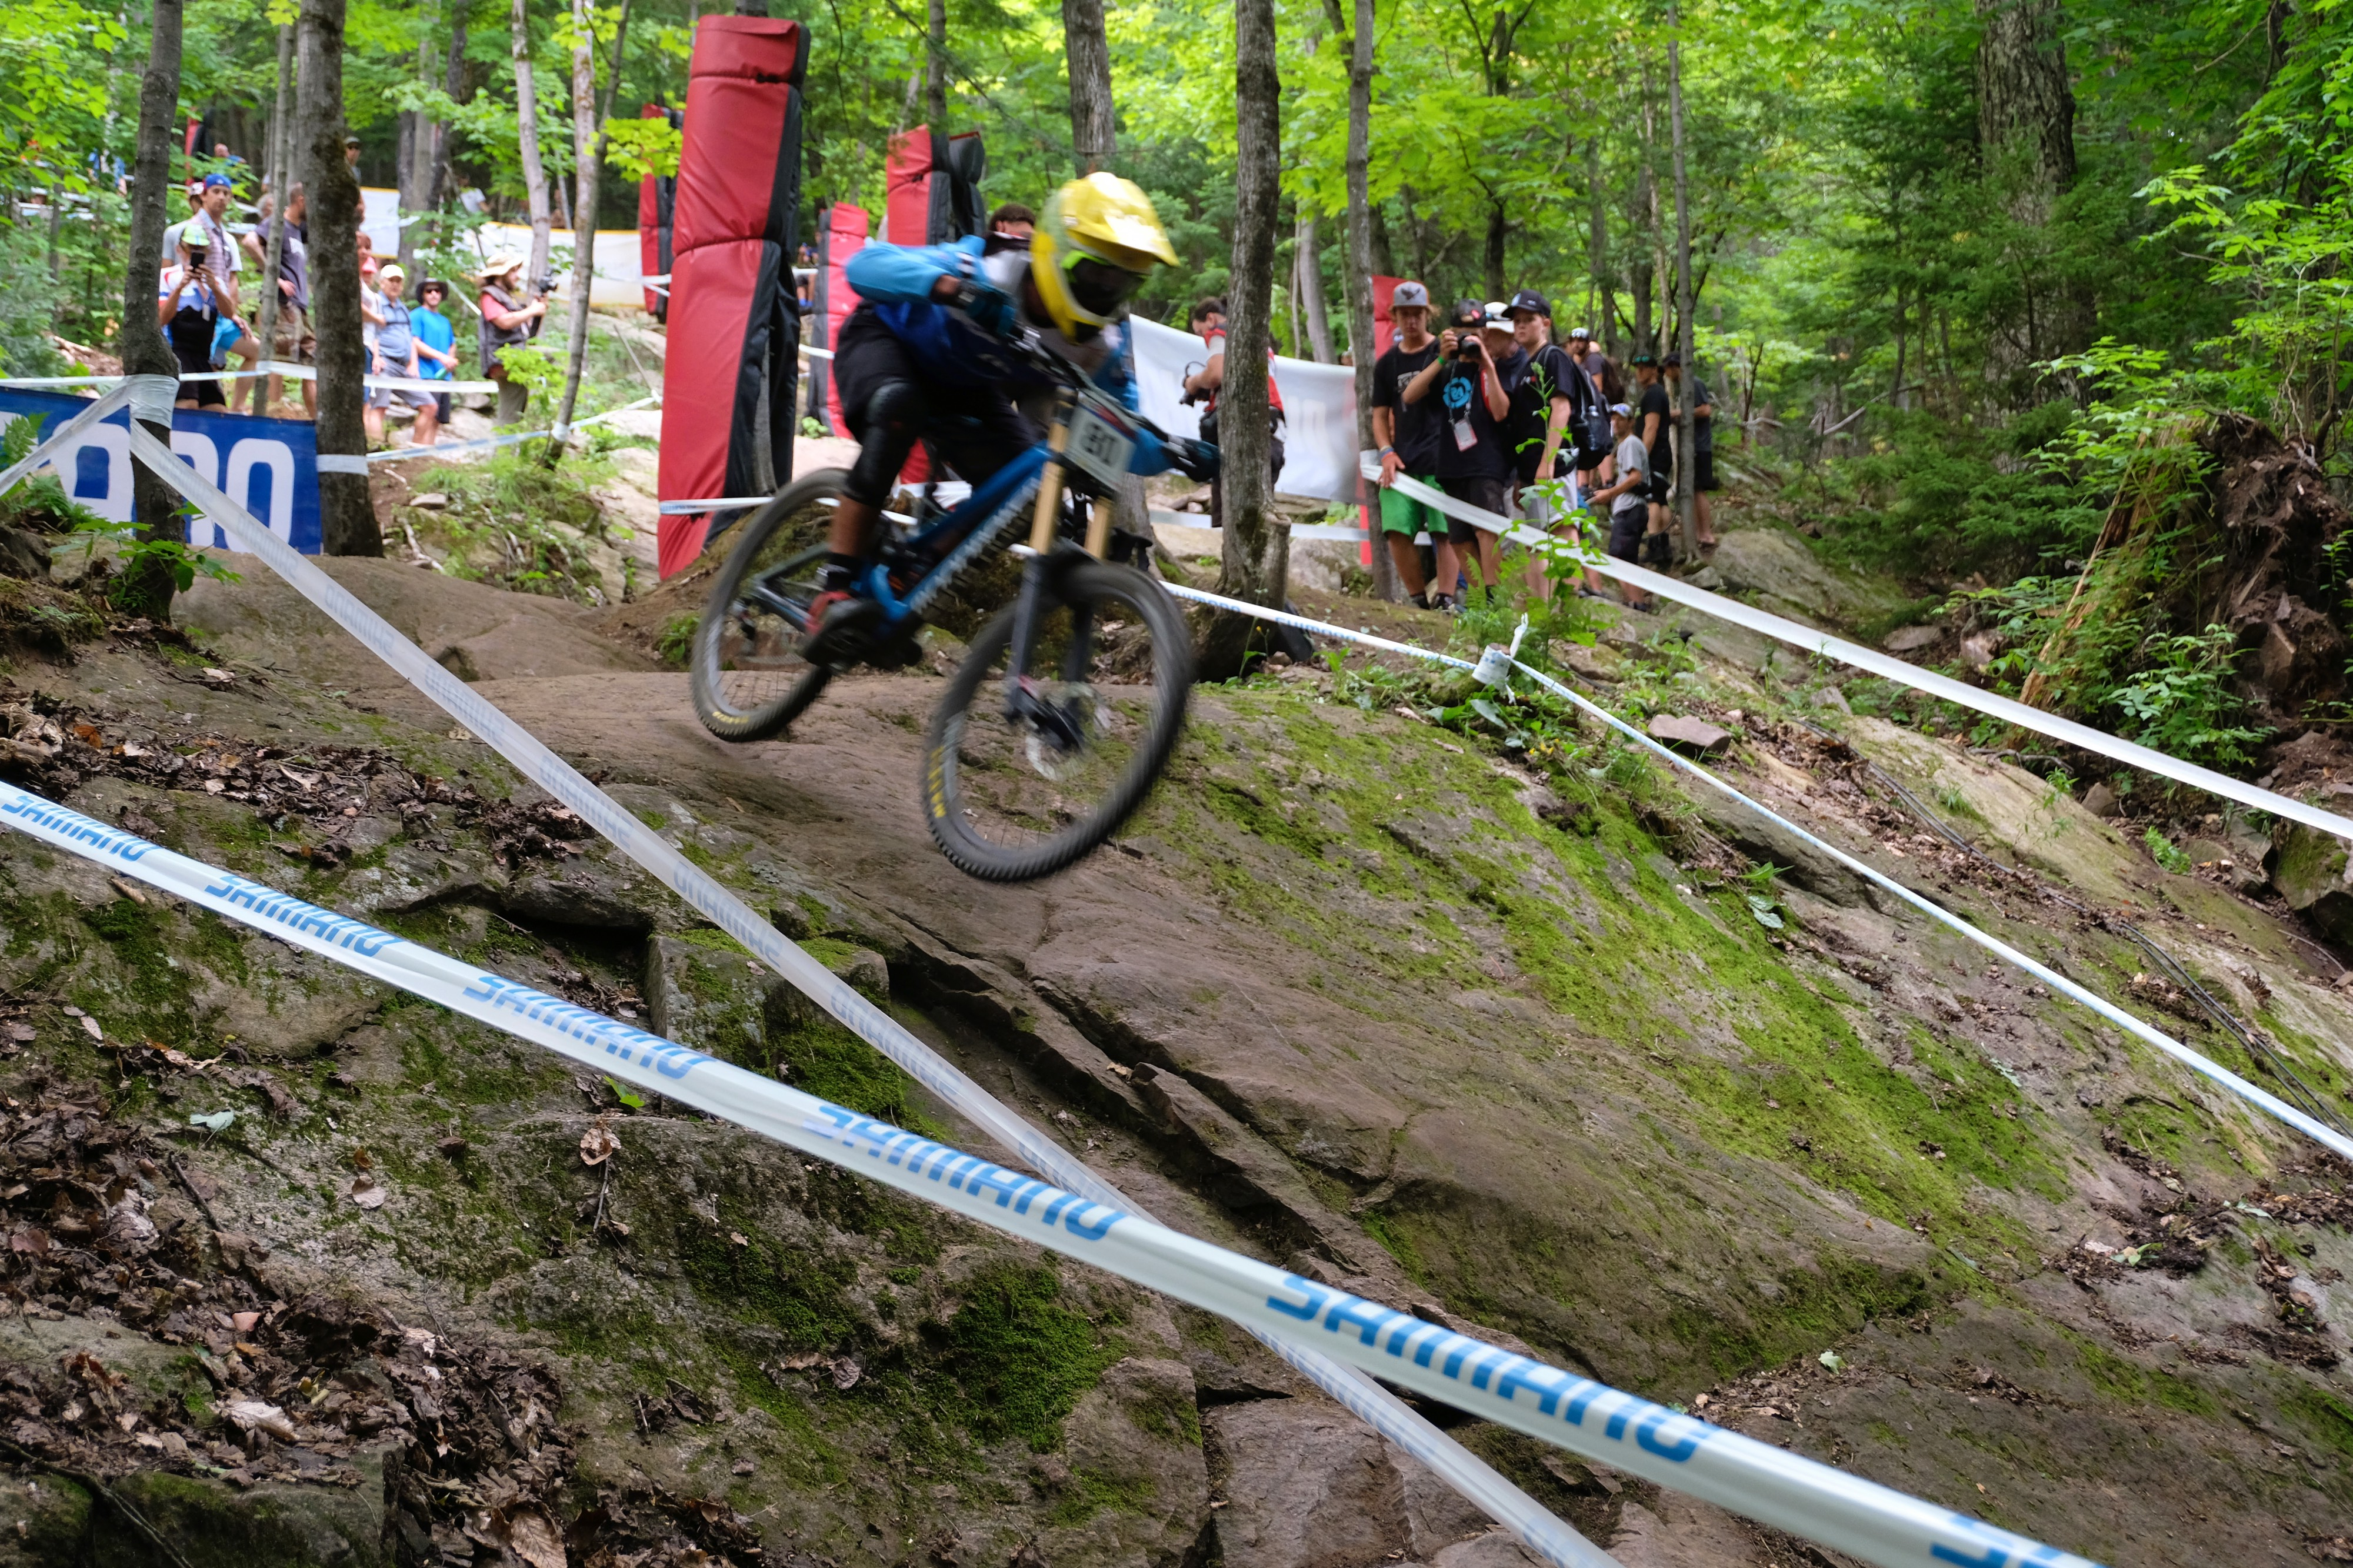 The speed with which the riders raced through the rock gardens was incredible to witness...